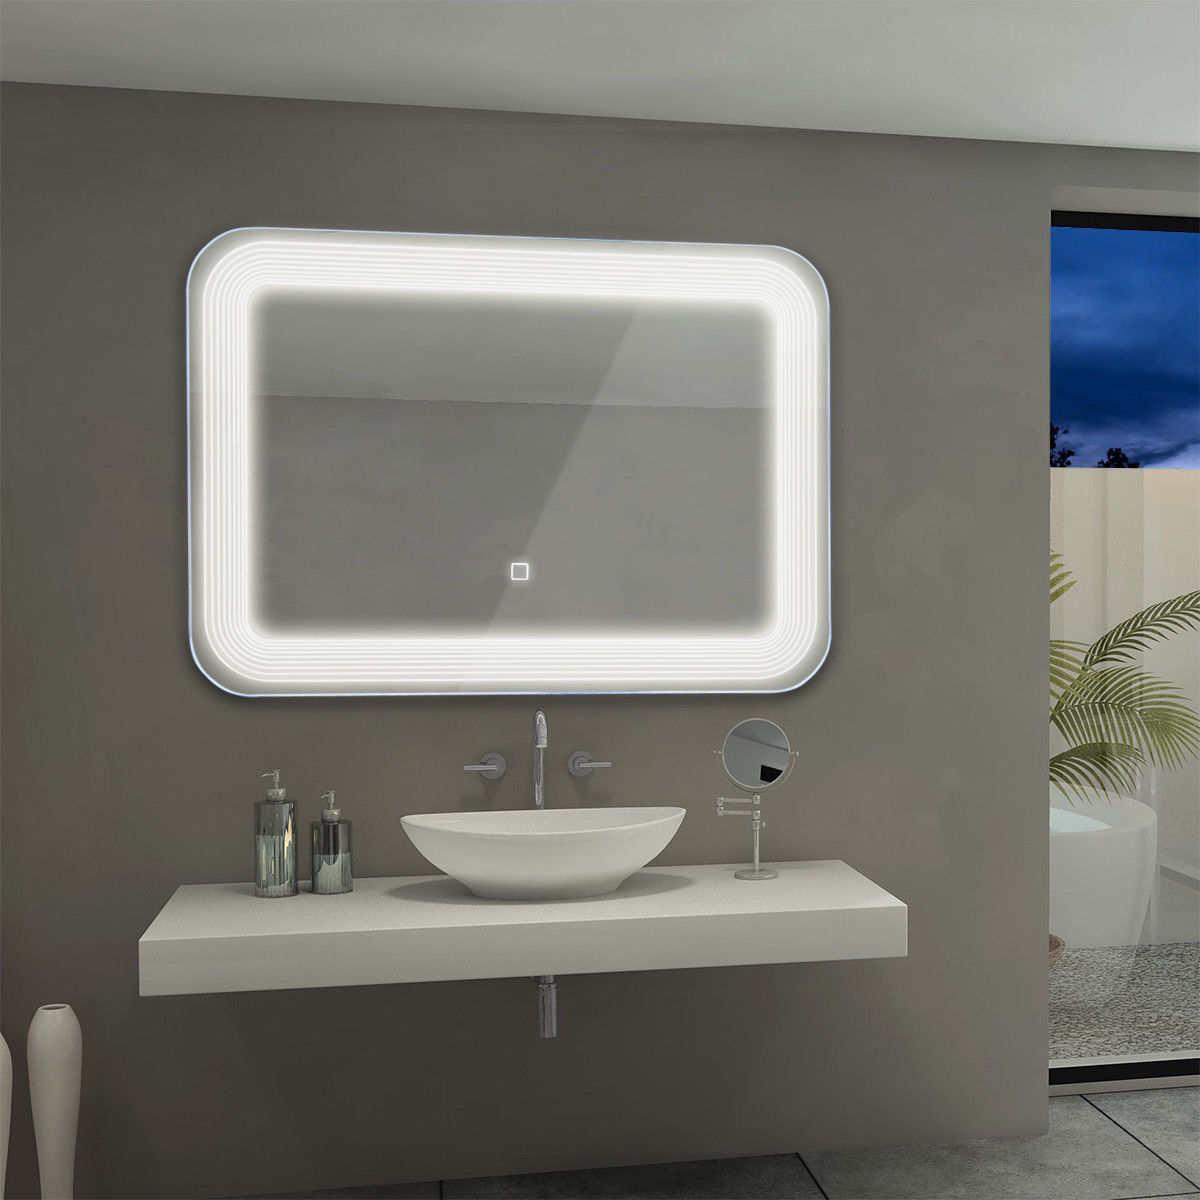 bathroom wall mounted mirrors costway led wall mount mirror bathroom vanity makeup 17143 | 694329b6 a456 4ad2 9d82 bb3043039c13 1.37befd8d1b10cc70de1c73b7d8d846e3